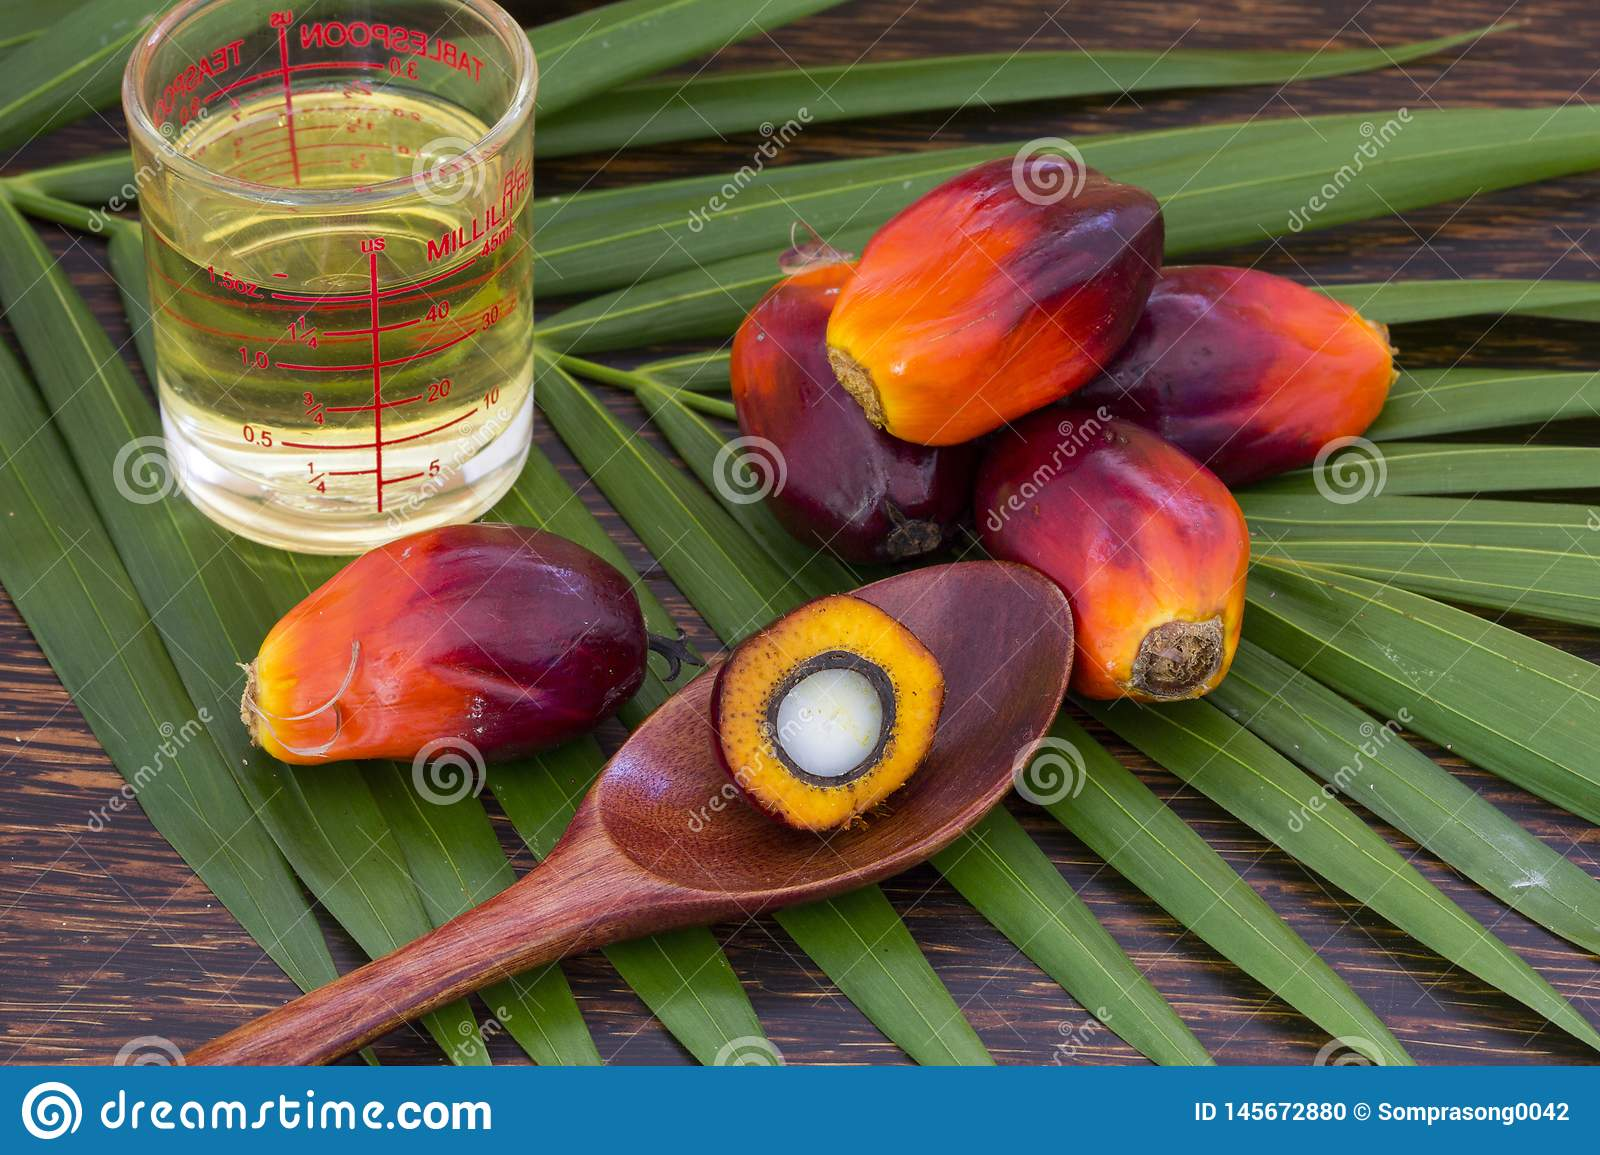 Close up of Palm Oil fruits with cooking oil and palm leaf on a wooden background